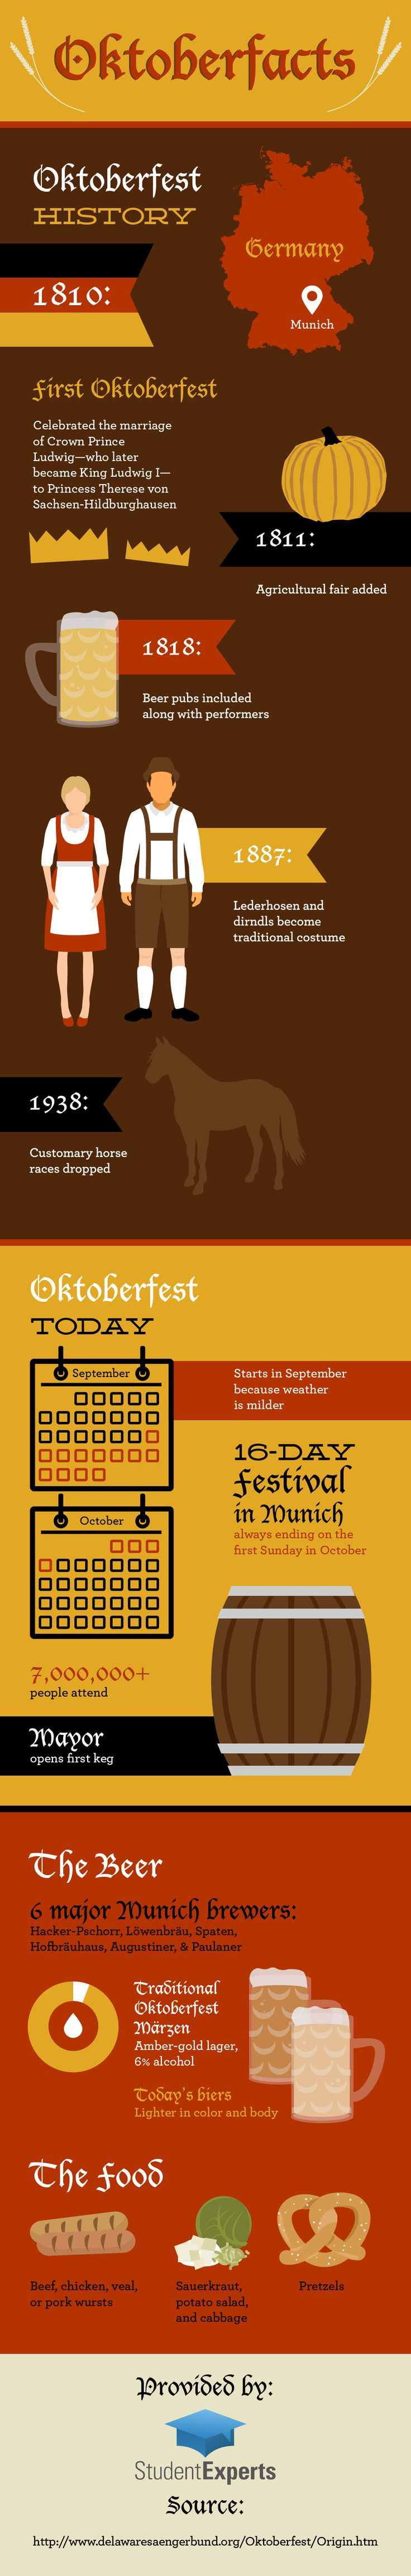 Are you thinking about celebrating Oktoberfest this year with a few beers? Pace…